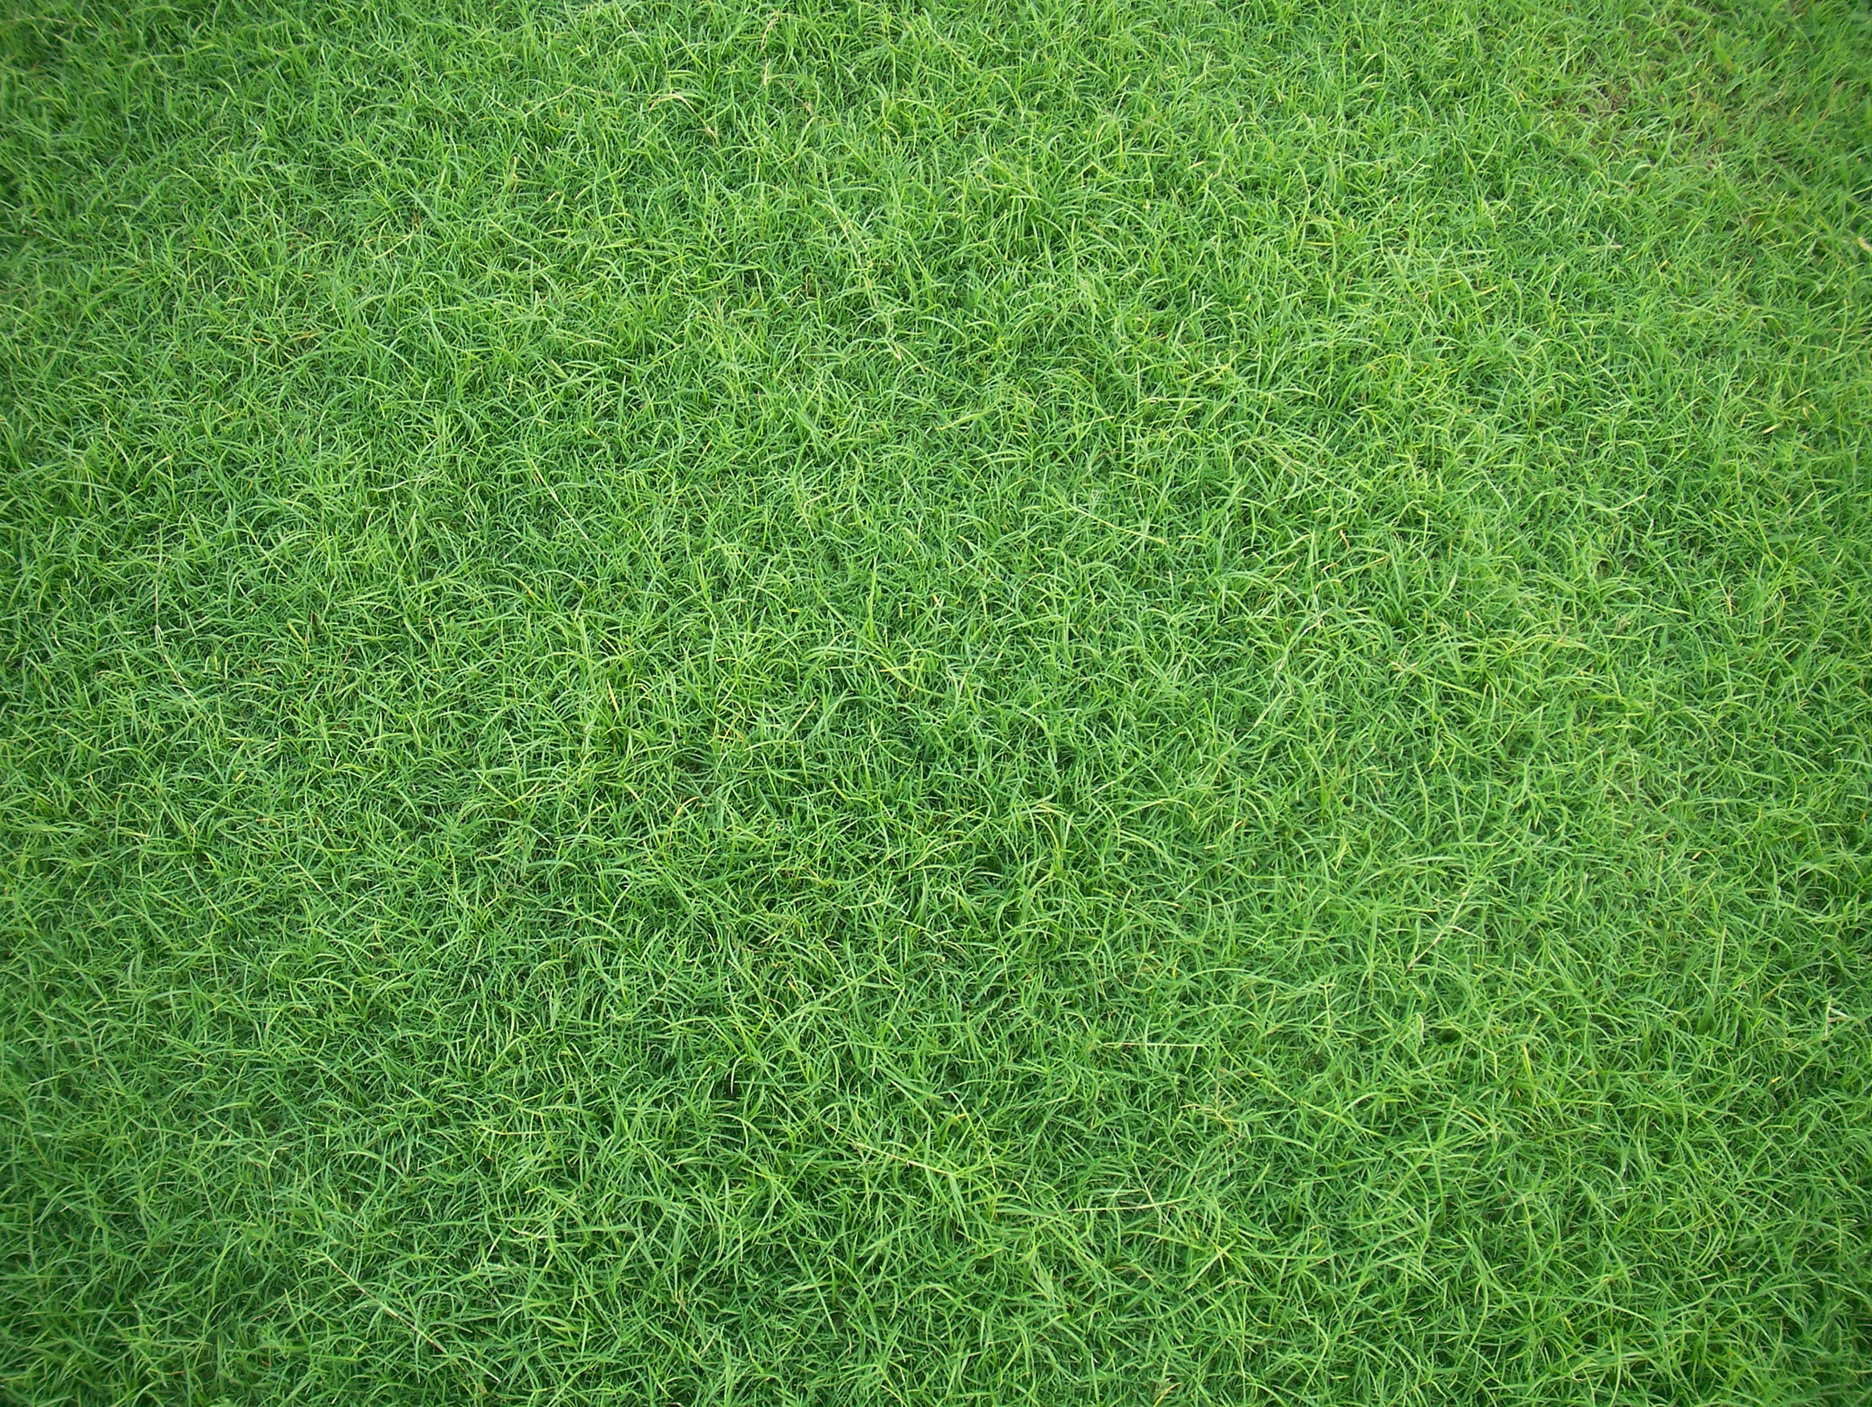 grass background texture - photo #13